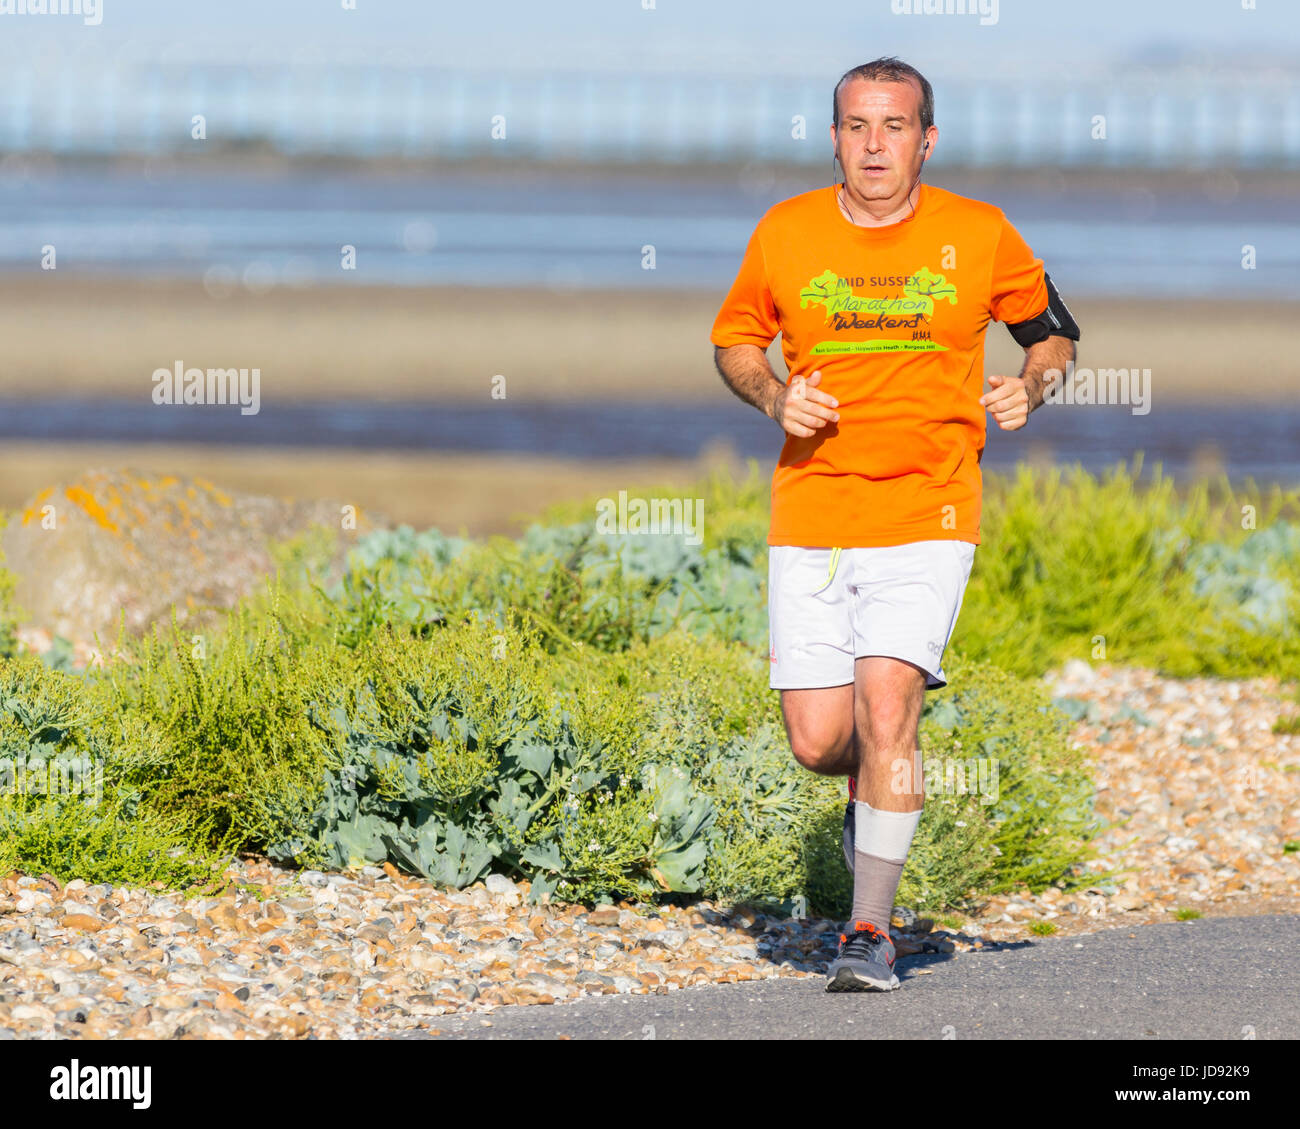 Man jogging along the seafront road in the early morning in Summer on a hot day. - Stock Image